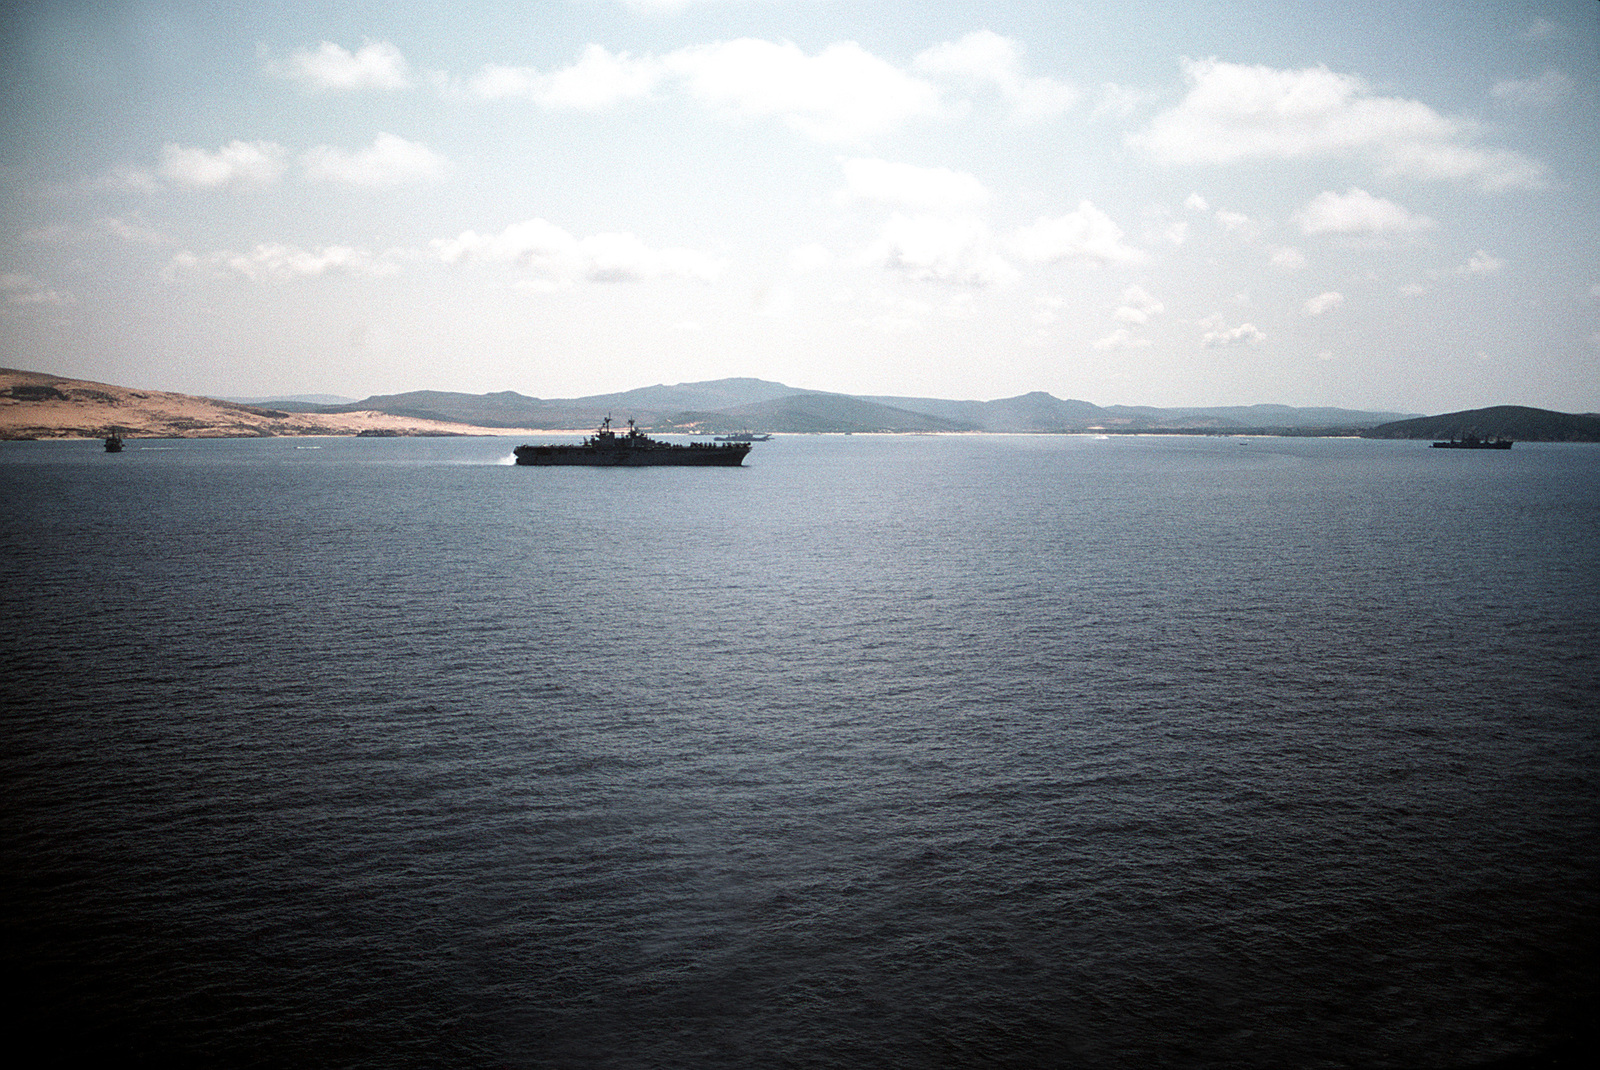 The amphibious transport dock USS PONCE (LPD 15), left; the amphibious assault ship USS WASP (LHD 1), center foreground; the tank landing ship USS SUMTER COUNTY (LST 1181), center background; and the amphibious cargo ship USS EL PASO (LKA 117) lie off the coast of Tunisia during an amphibious exercise